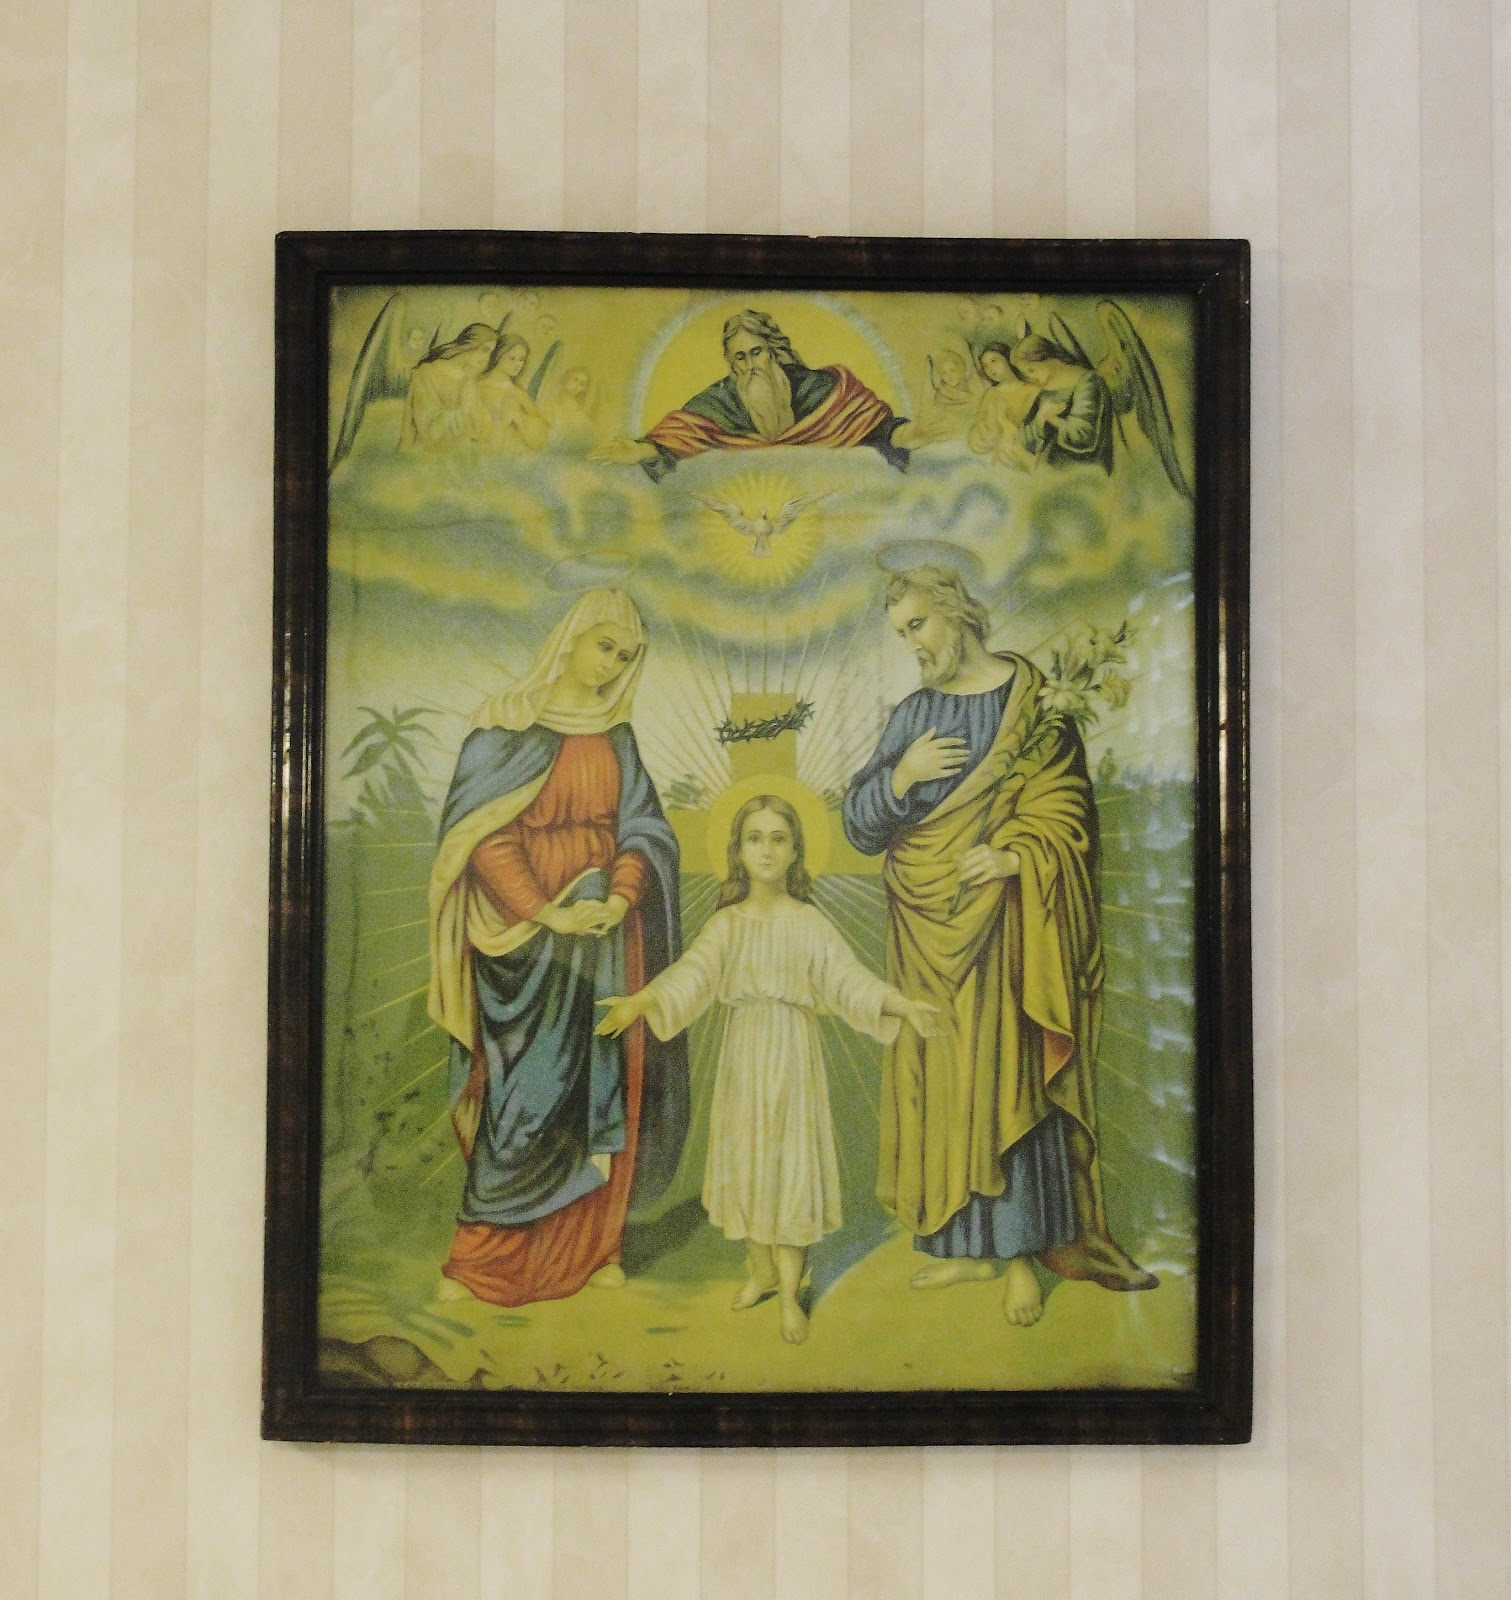 Catholic Home Decor A Little Heaven At Home Home Decorators Catalog Best Ideas of Home Decor and Design [homedecoratorscatalog.us]